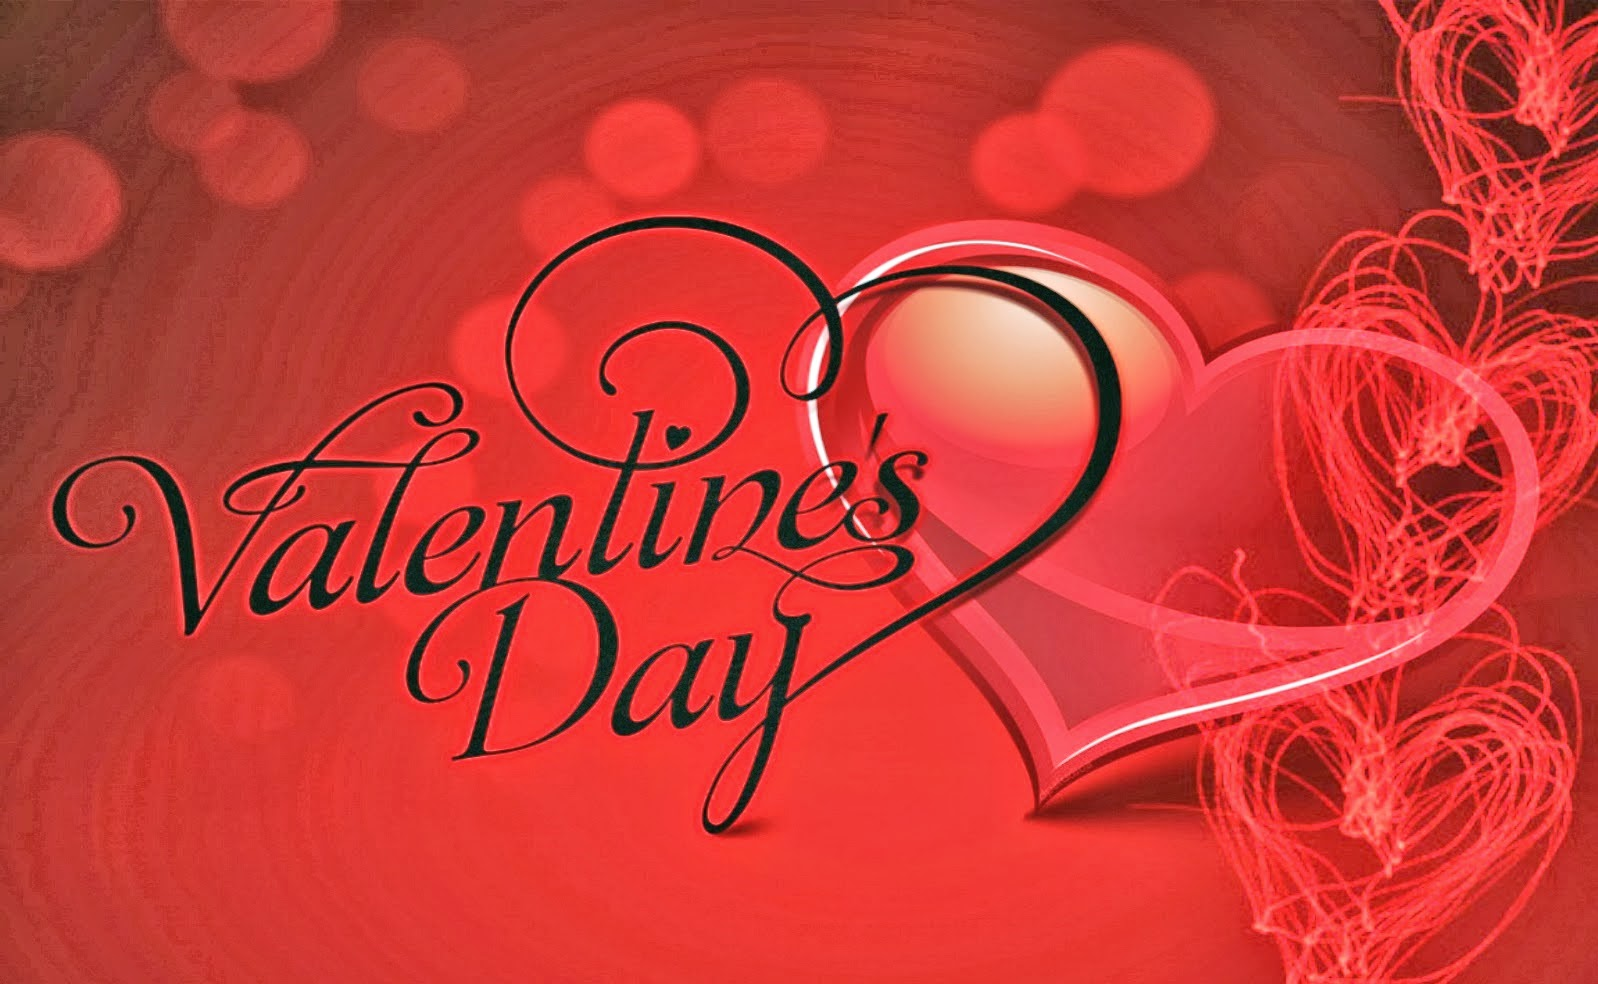 Valentines-day-Greetings-2015